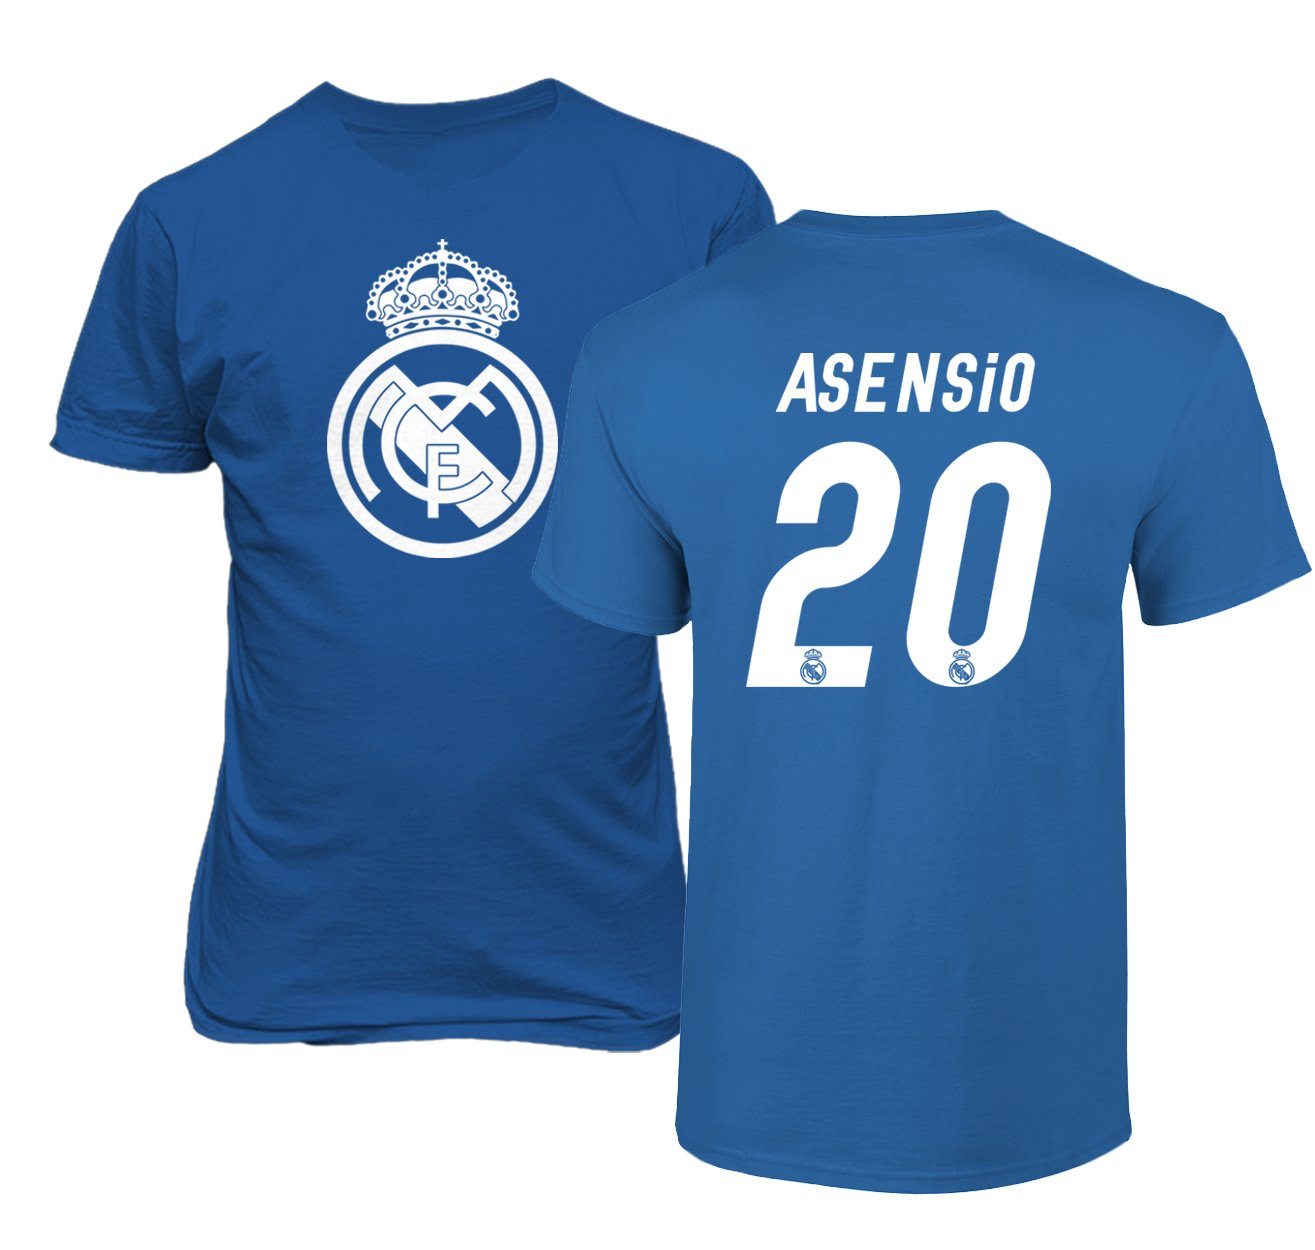 Amazon.com : Real Madrid Marco ASENSIO #20 Jersey Shirt Soccer Football Mens T-Shirt : Sports & Outdoors